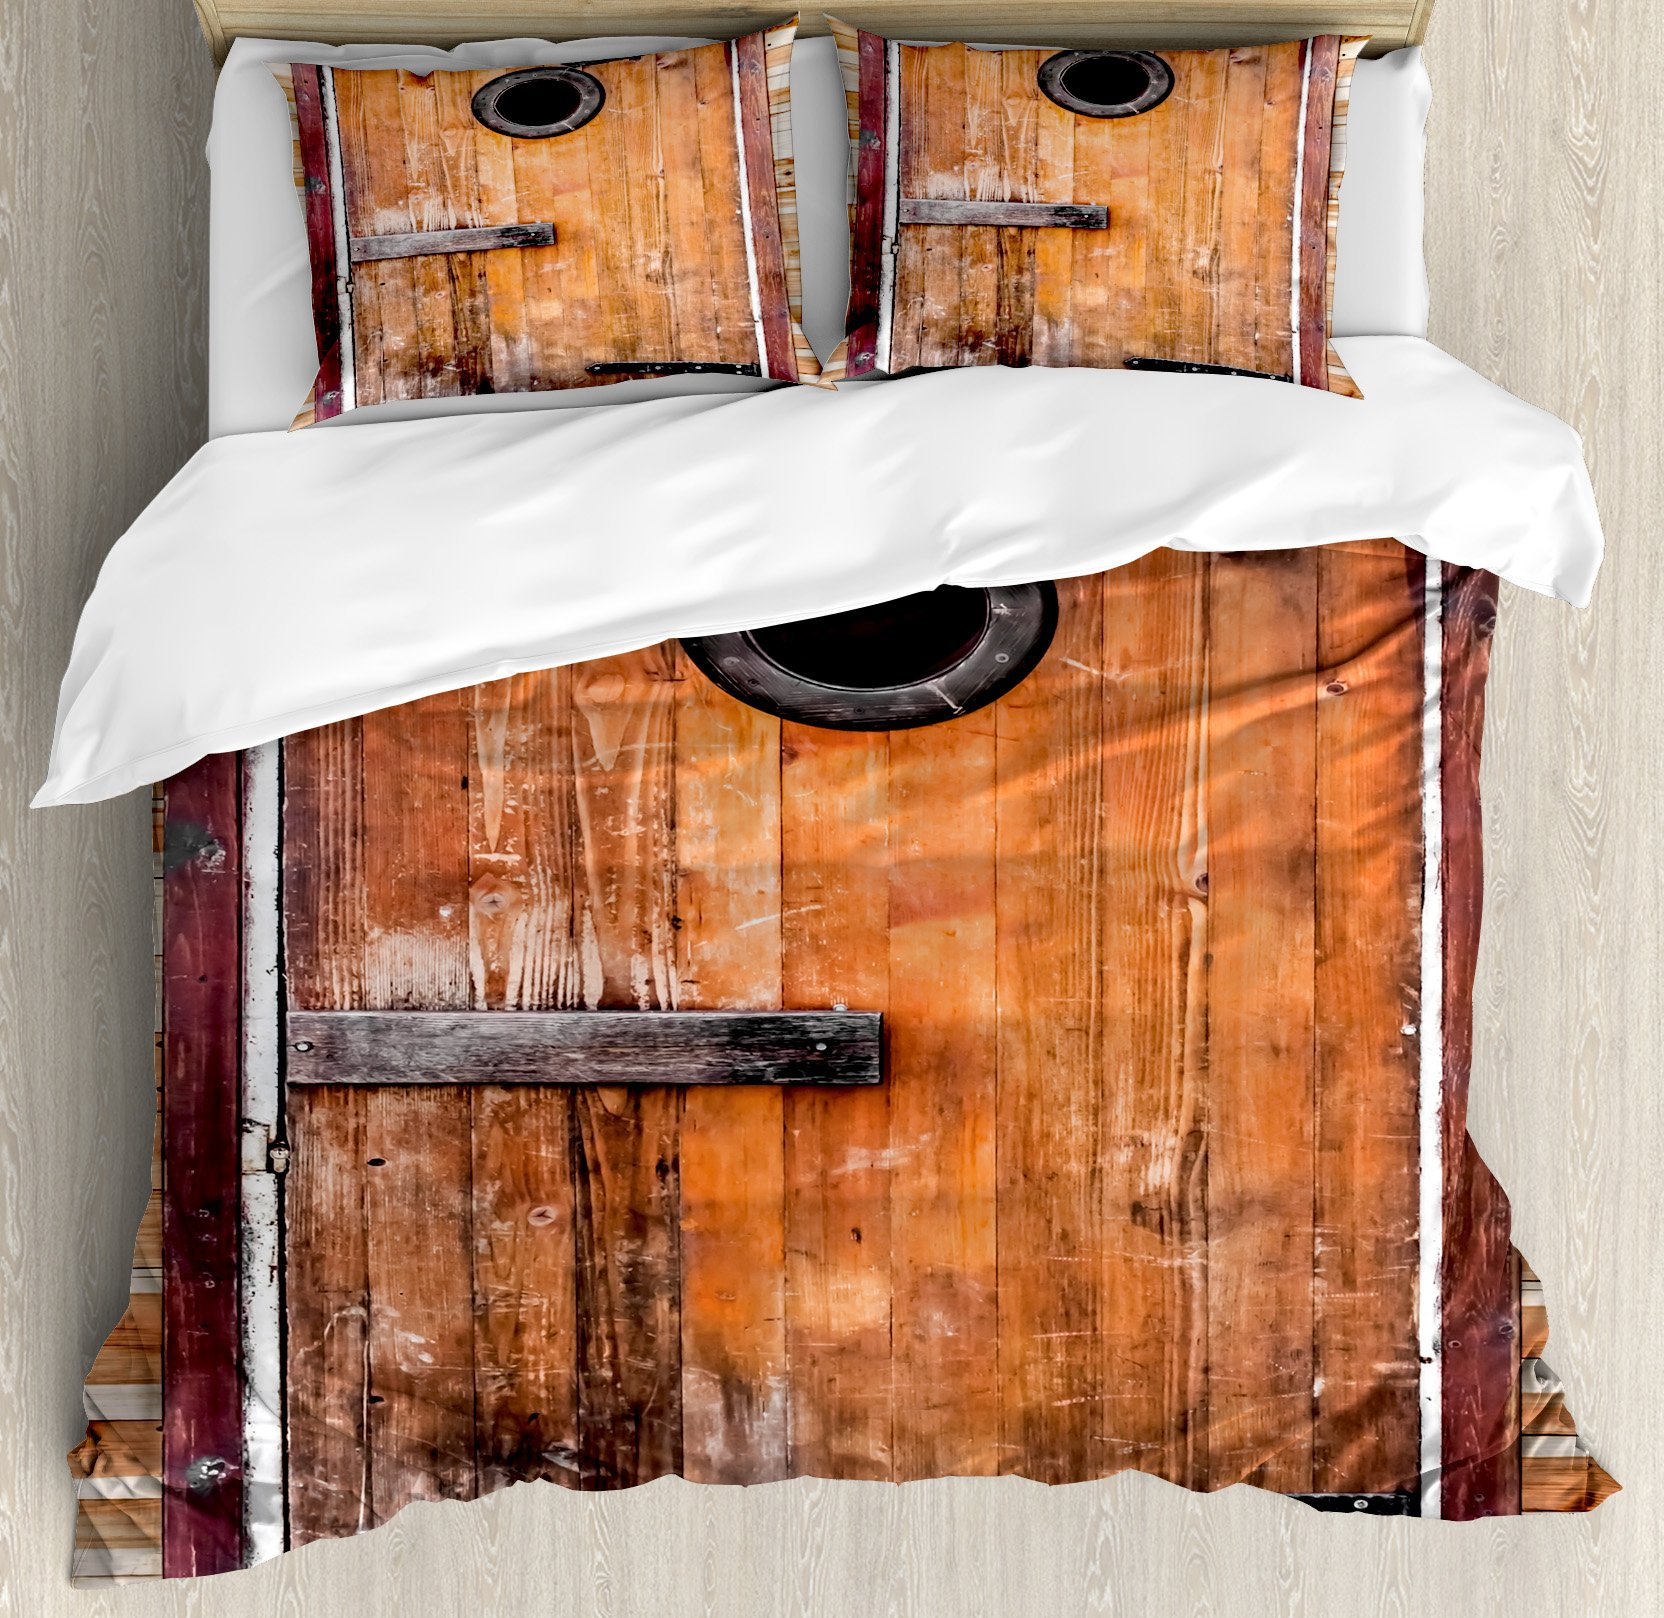 Rustic Duvet Cover Set by Ambesonne, Photograph of Antique Knotted Pine Wood with Control Window Lumber Nature Design, 3 Piece Bedding Set with Pillow Shams, King Size, Caramel Brown